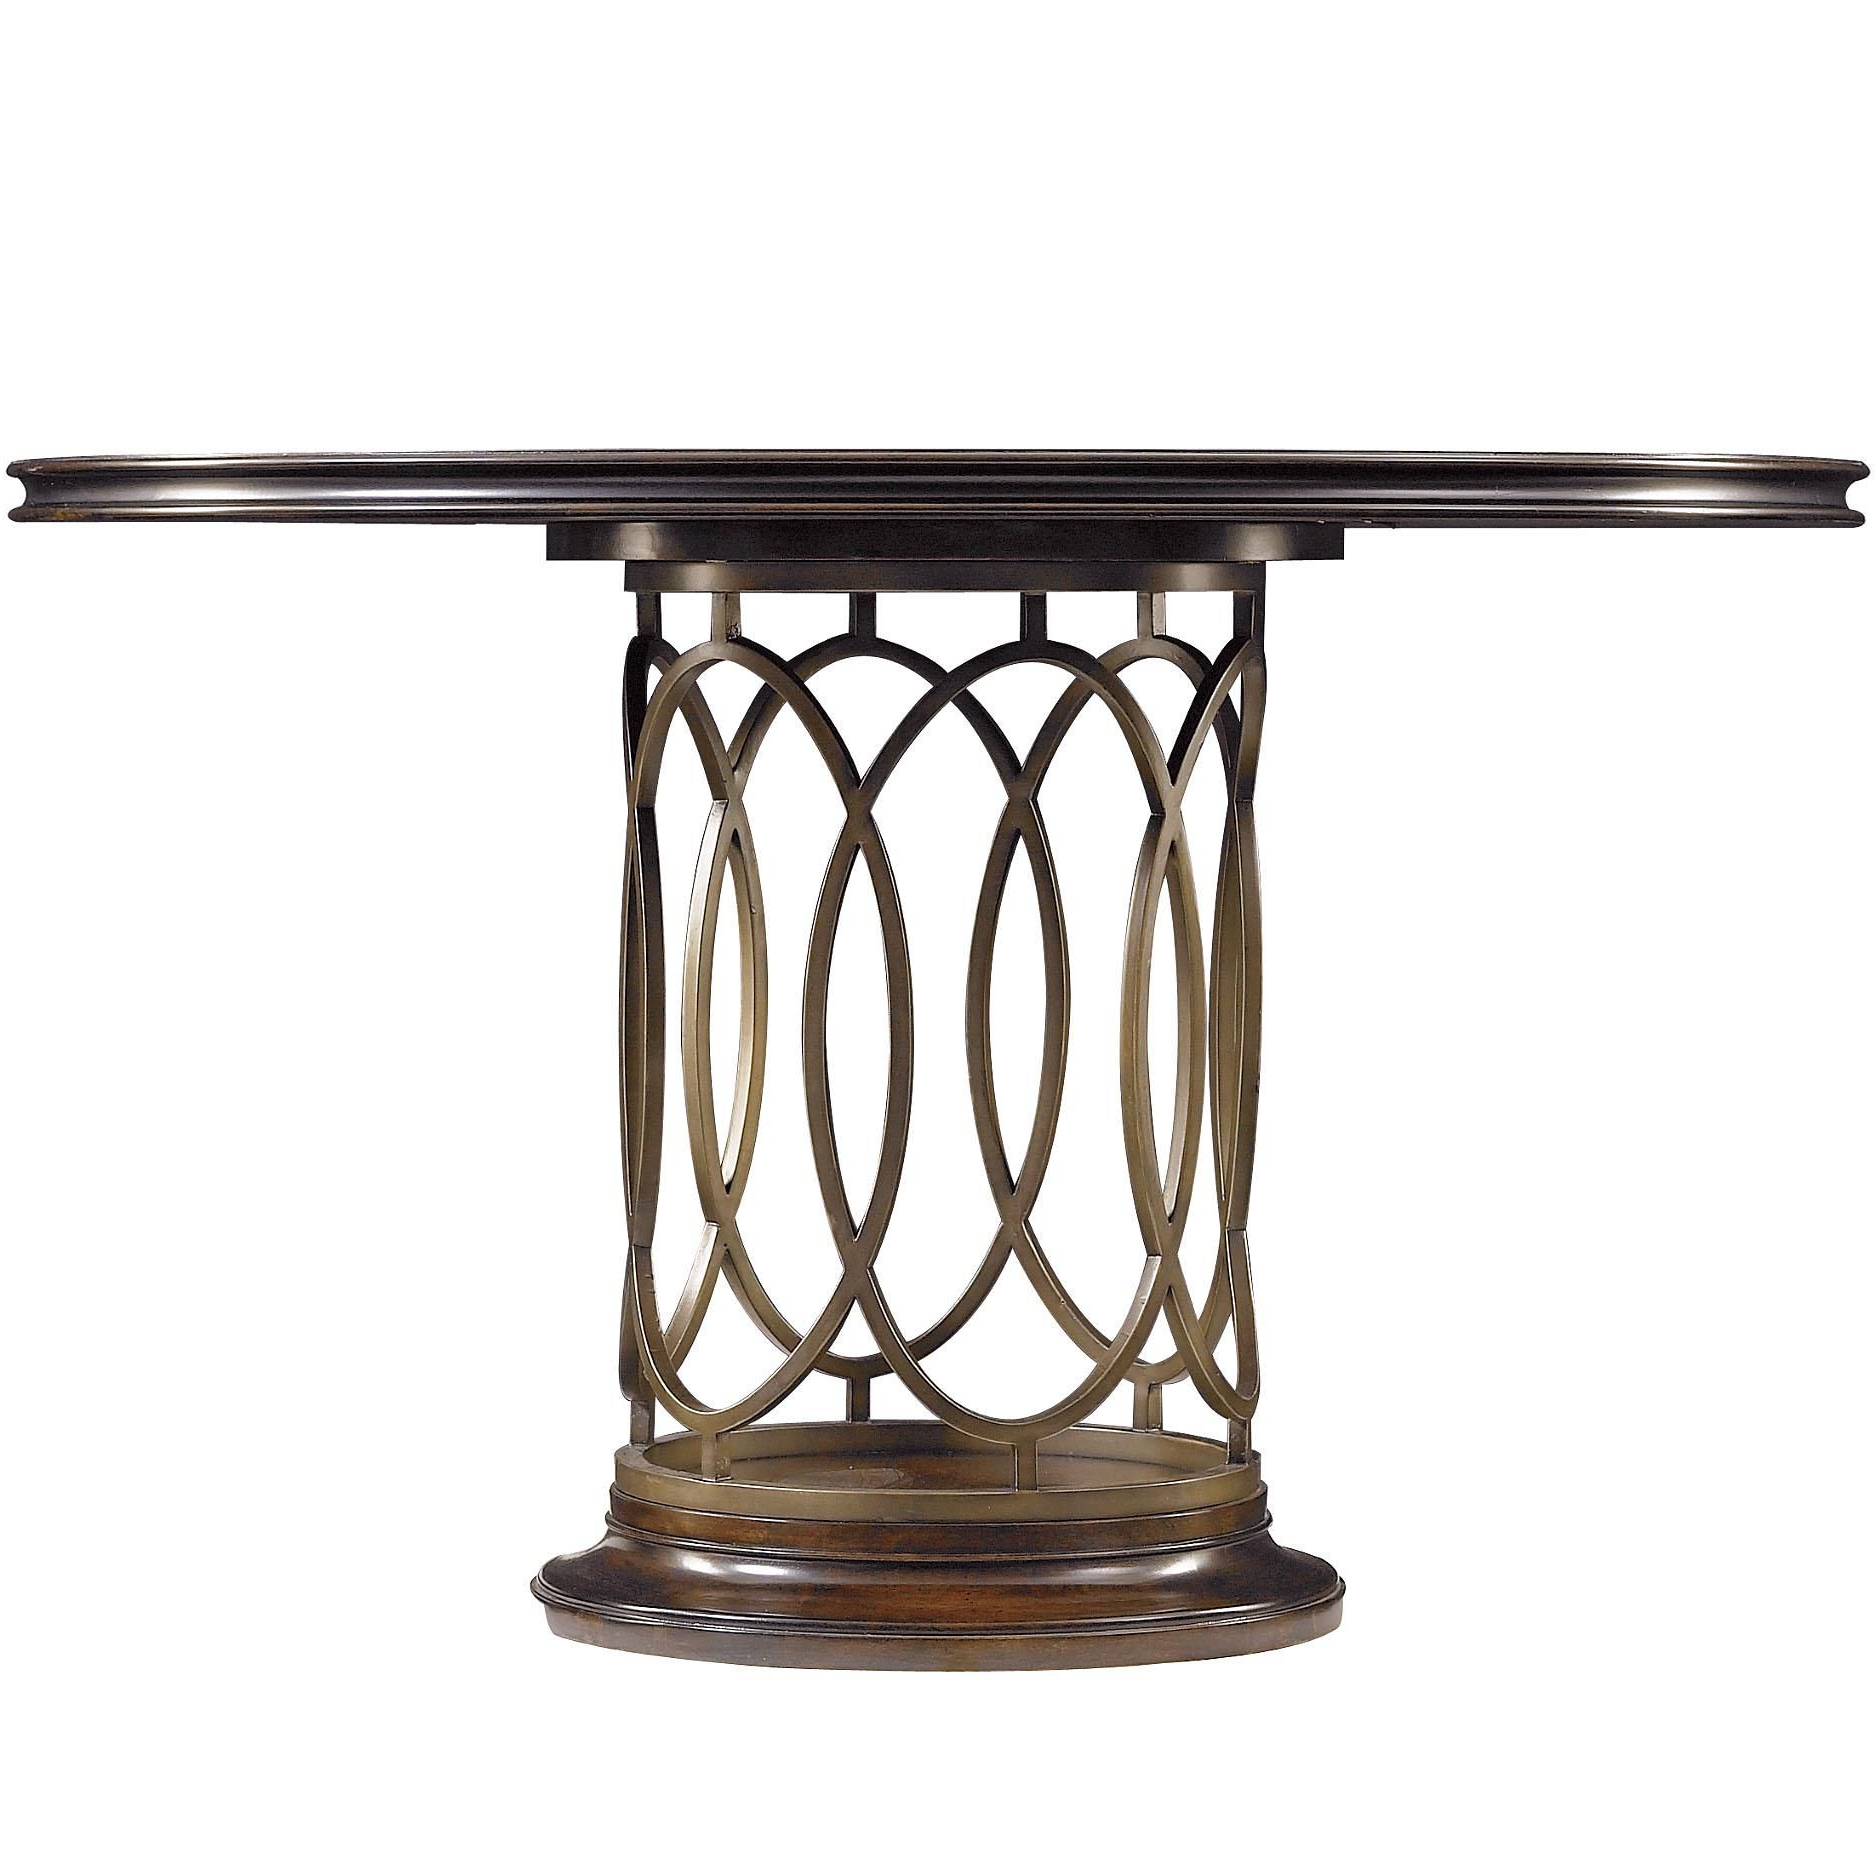 Popular Avalon Heights Neo Deco Pedestal Tablestanley Furniture Inside Neo Round Dining Tables (View 14 of 25)